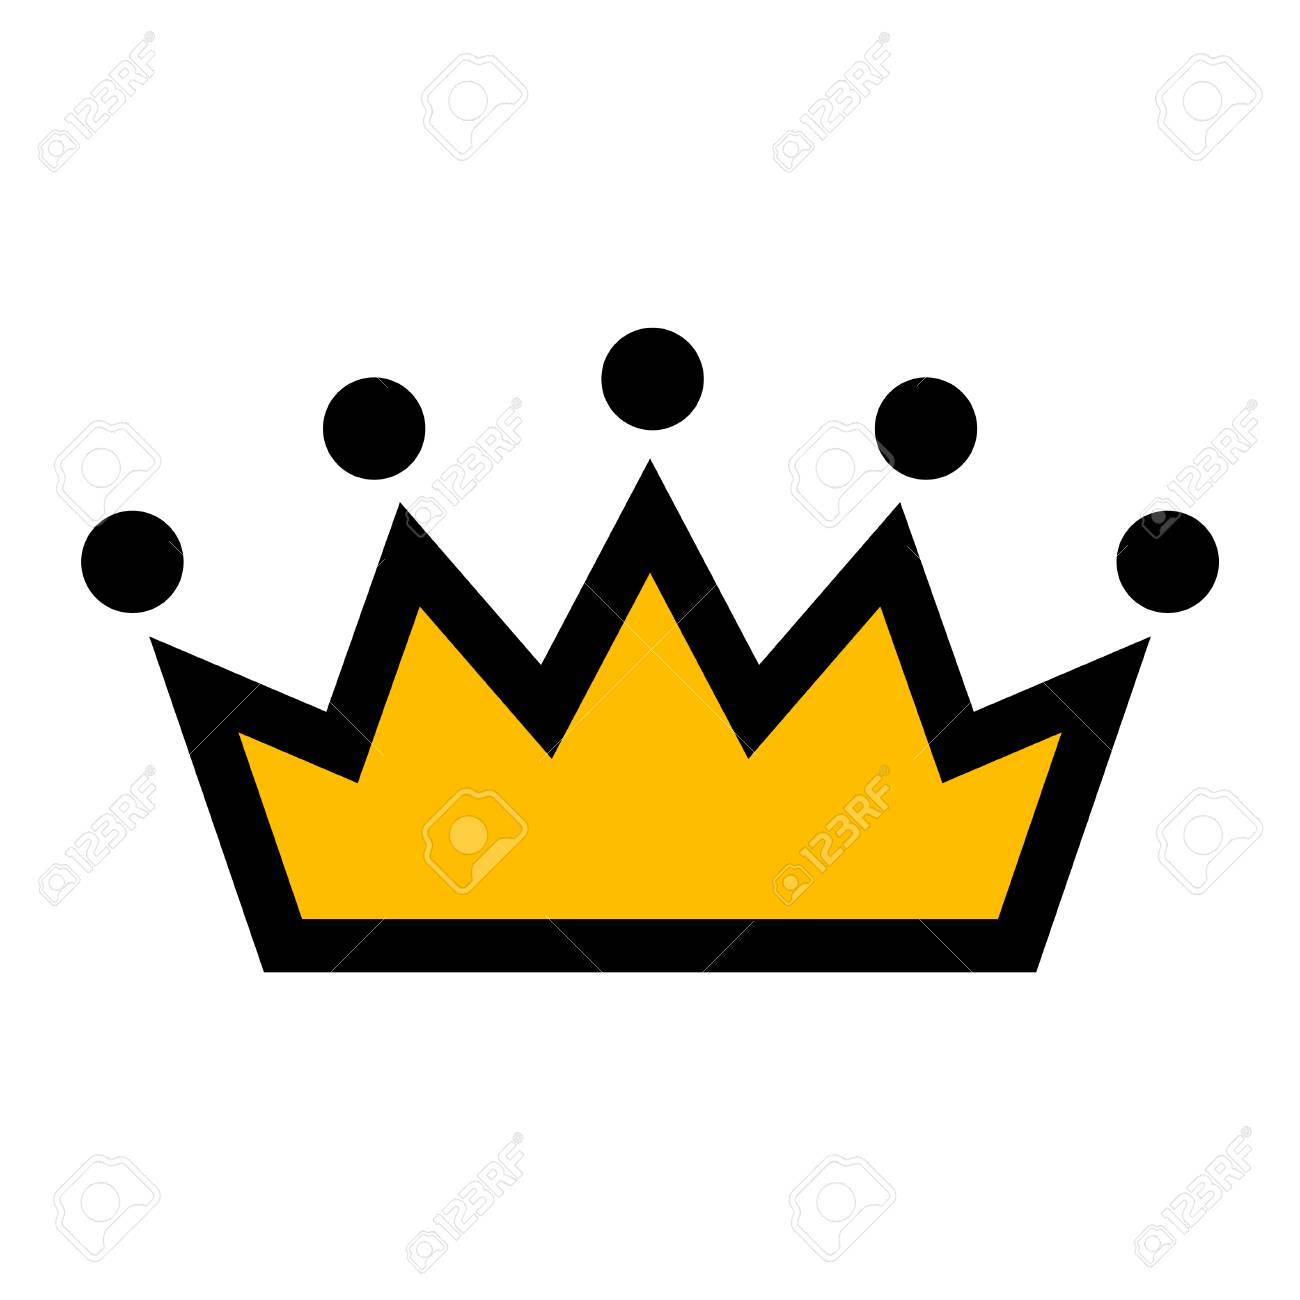 crown vector icon royalty free cliparts vectors and stock rh 123rf com crown vector outline crown vector art